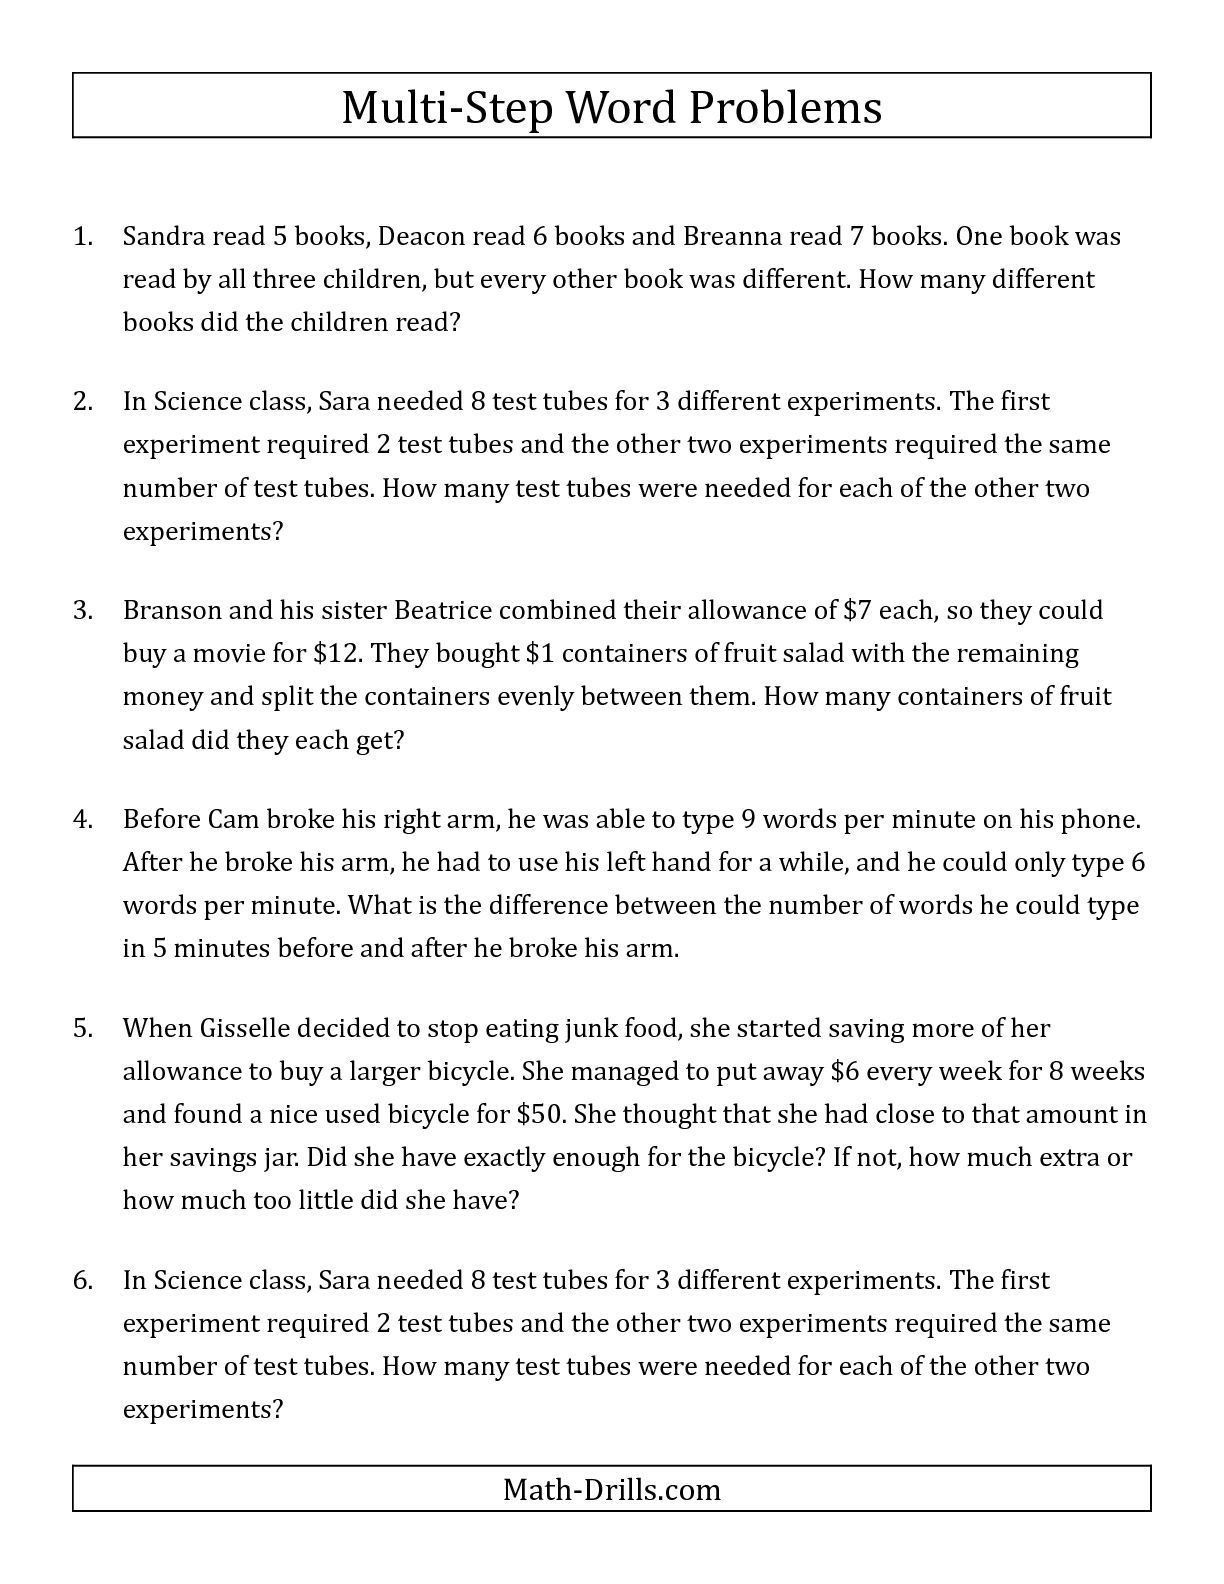 The Easy Multi Step Word Problems Math Worksheet From The